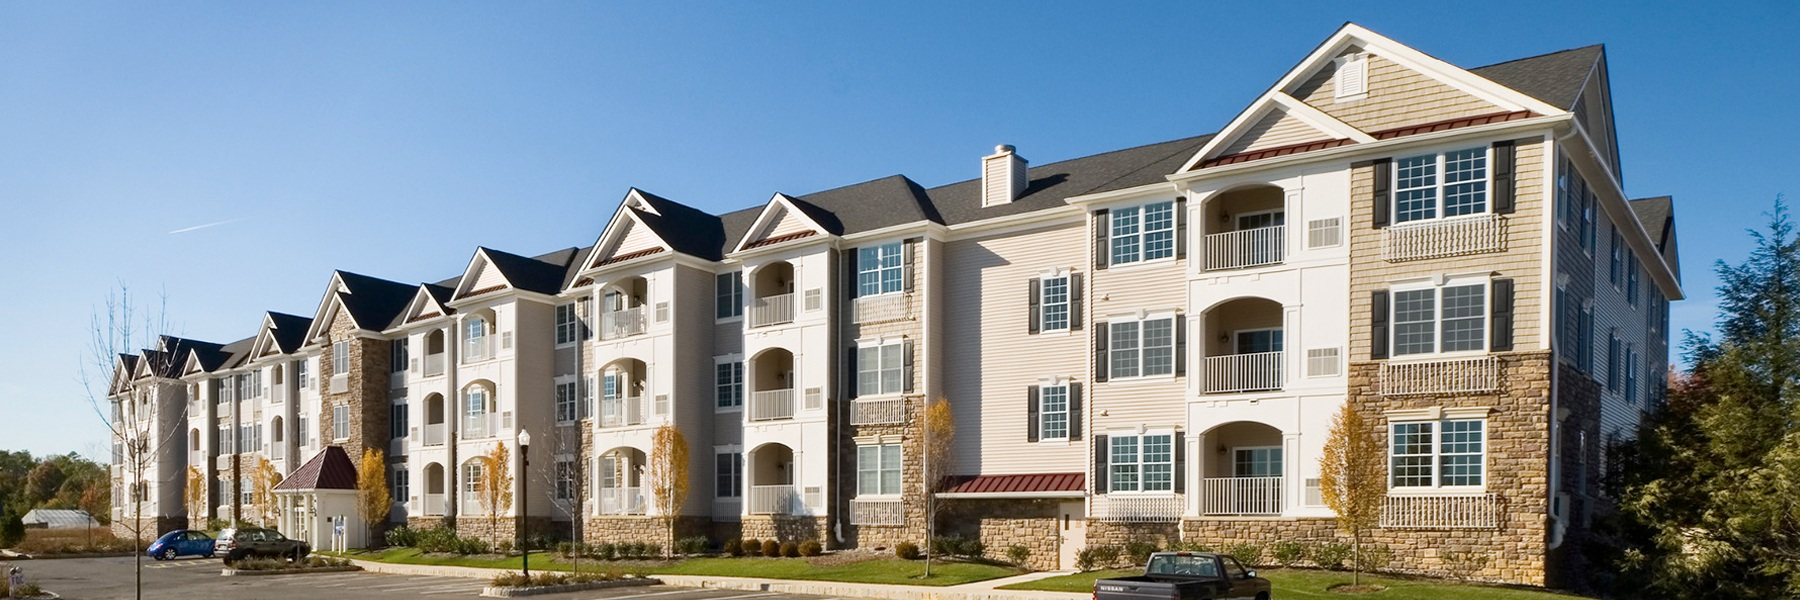 Montage At Hamilton Apartments For Rent in Hamilton Township, NJ Building View